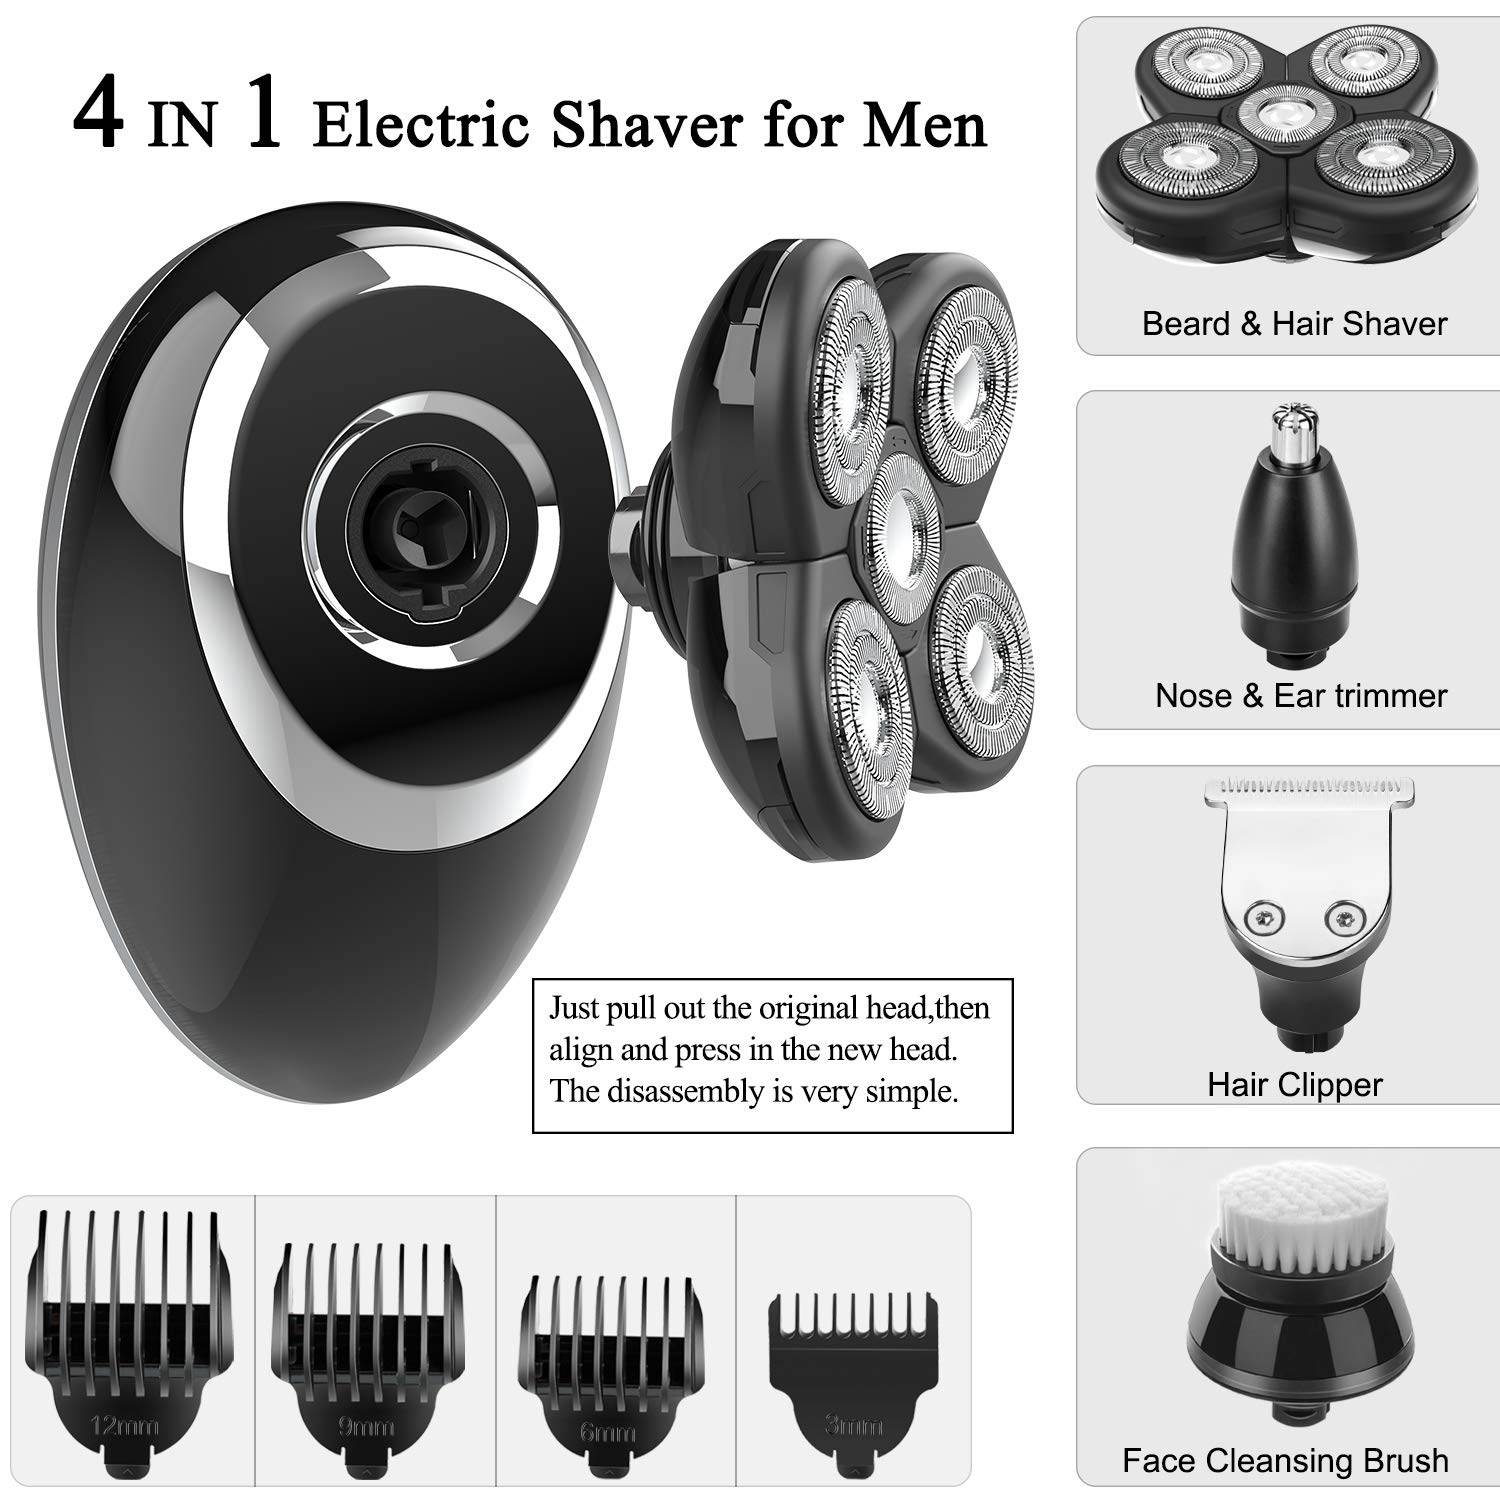 4 In 1 Eelctric Shaver Razor & Trimmer Sets, Cordless Bald Head Shaver for Men